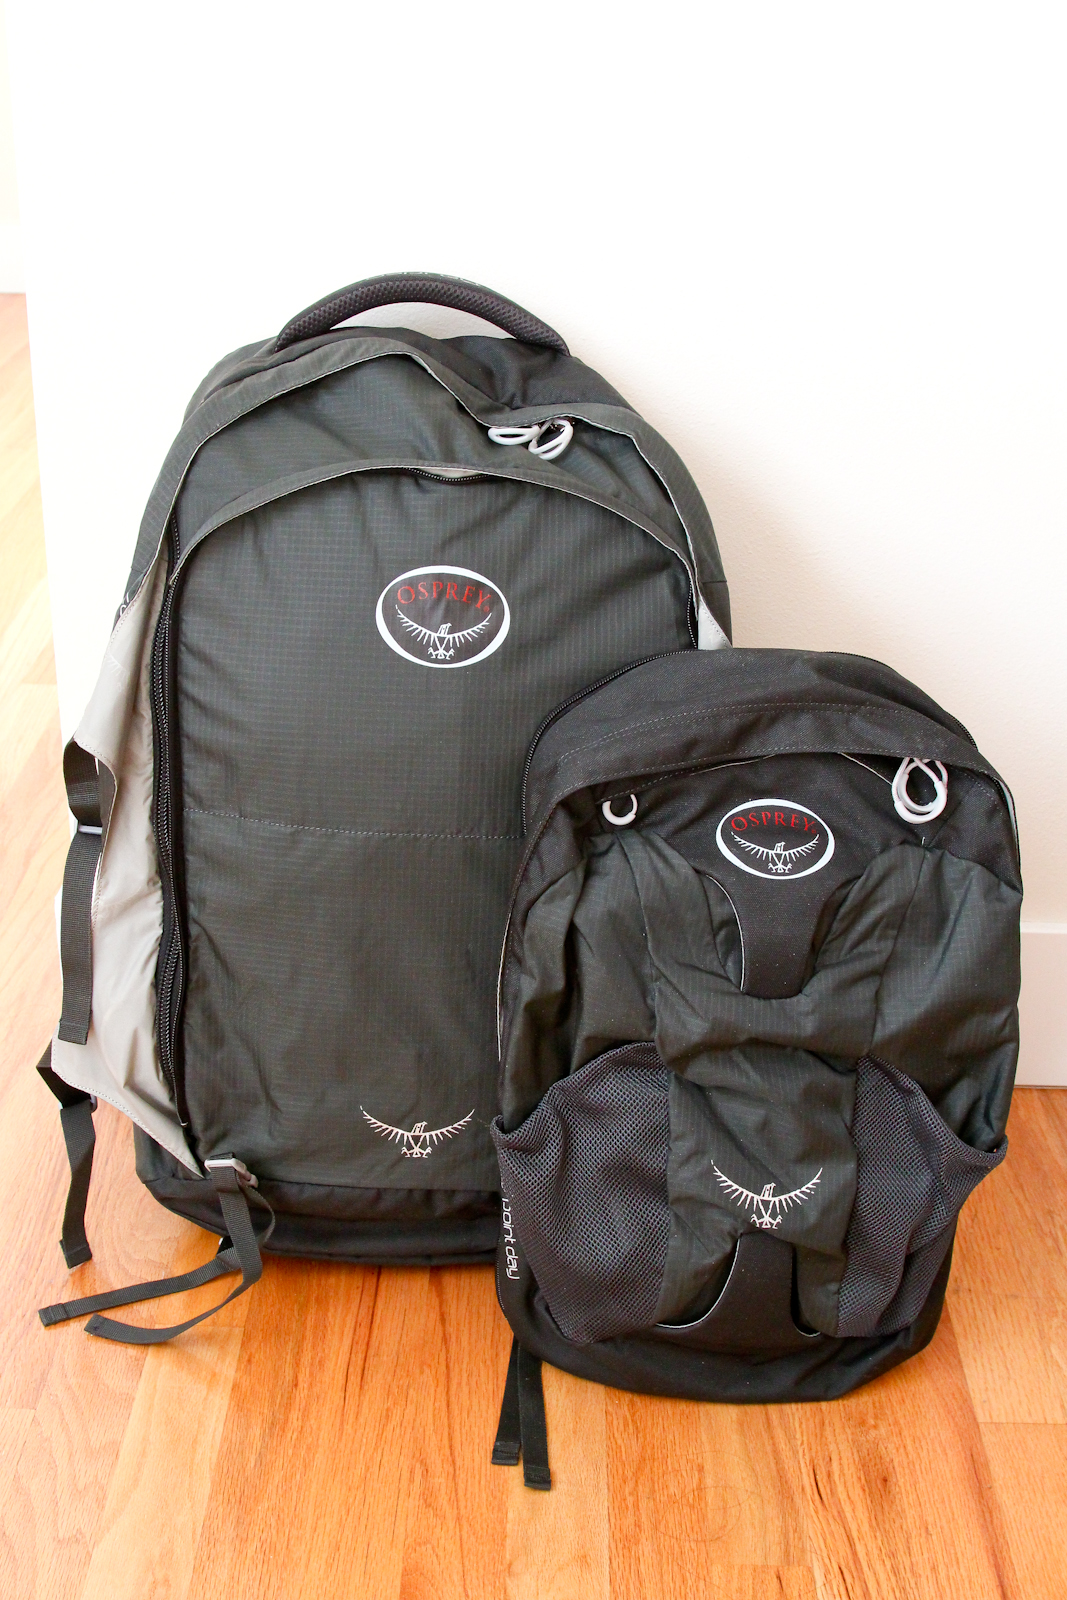 Osprey Farpoint 55 Travel Backpack gRXepNA1